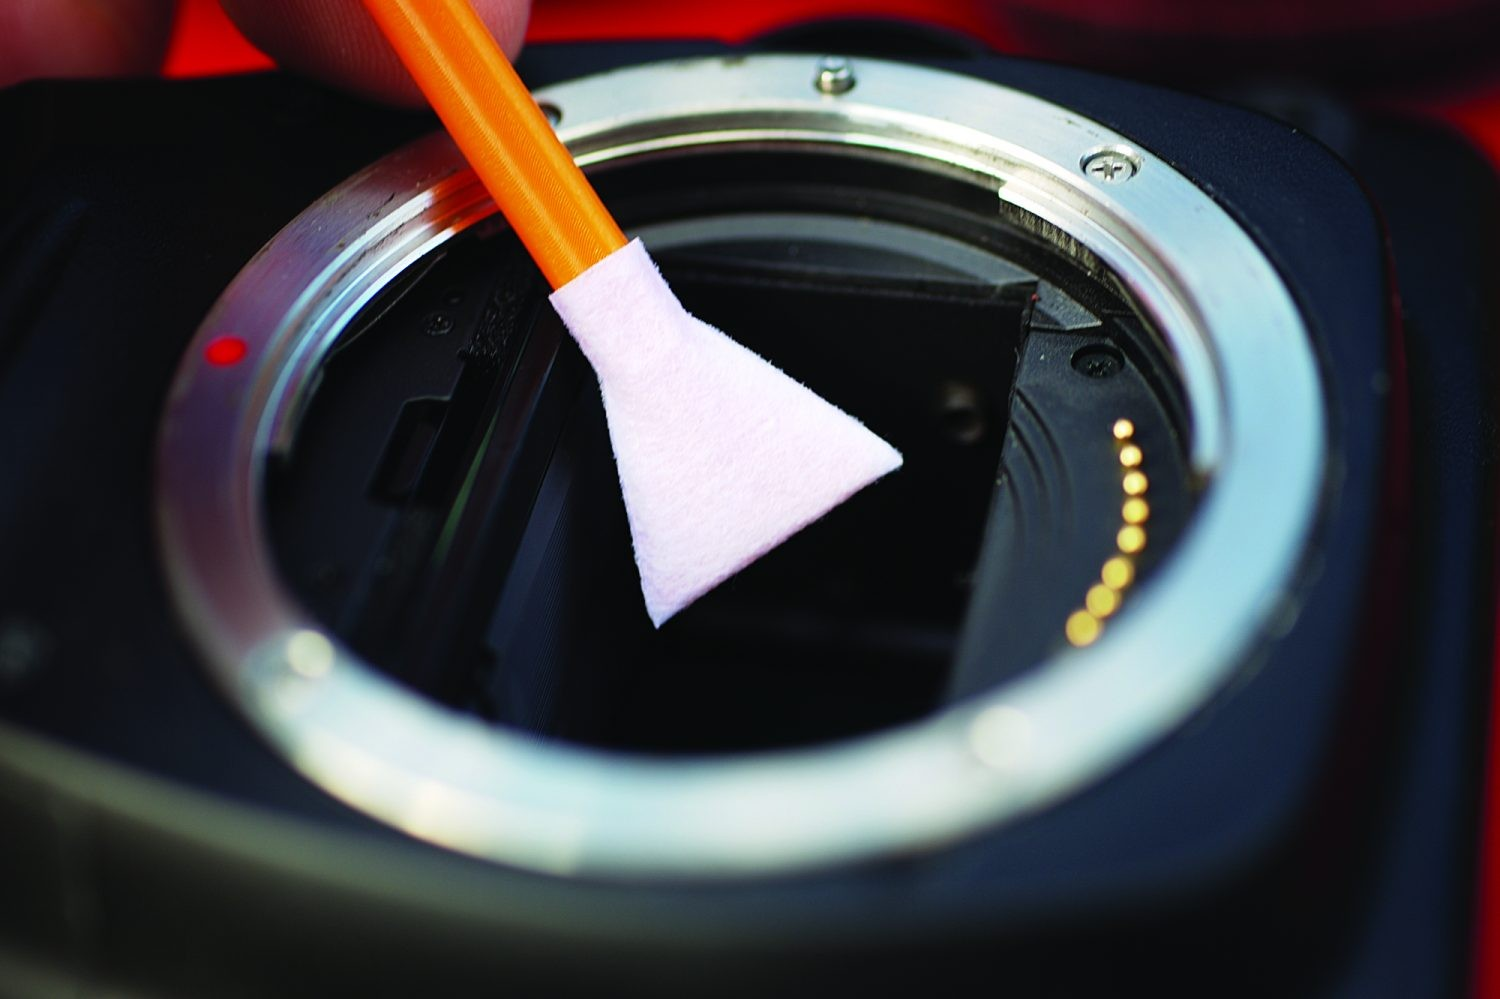 Cleaning your DSLR camera: step 4. Credit: Ian Evenden